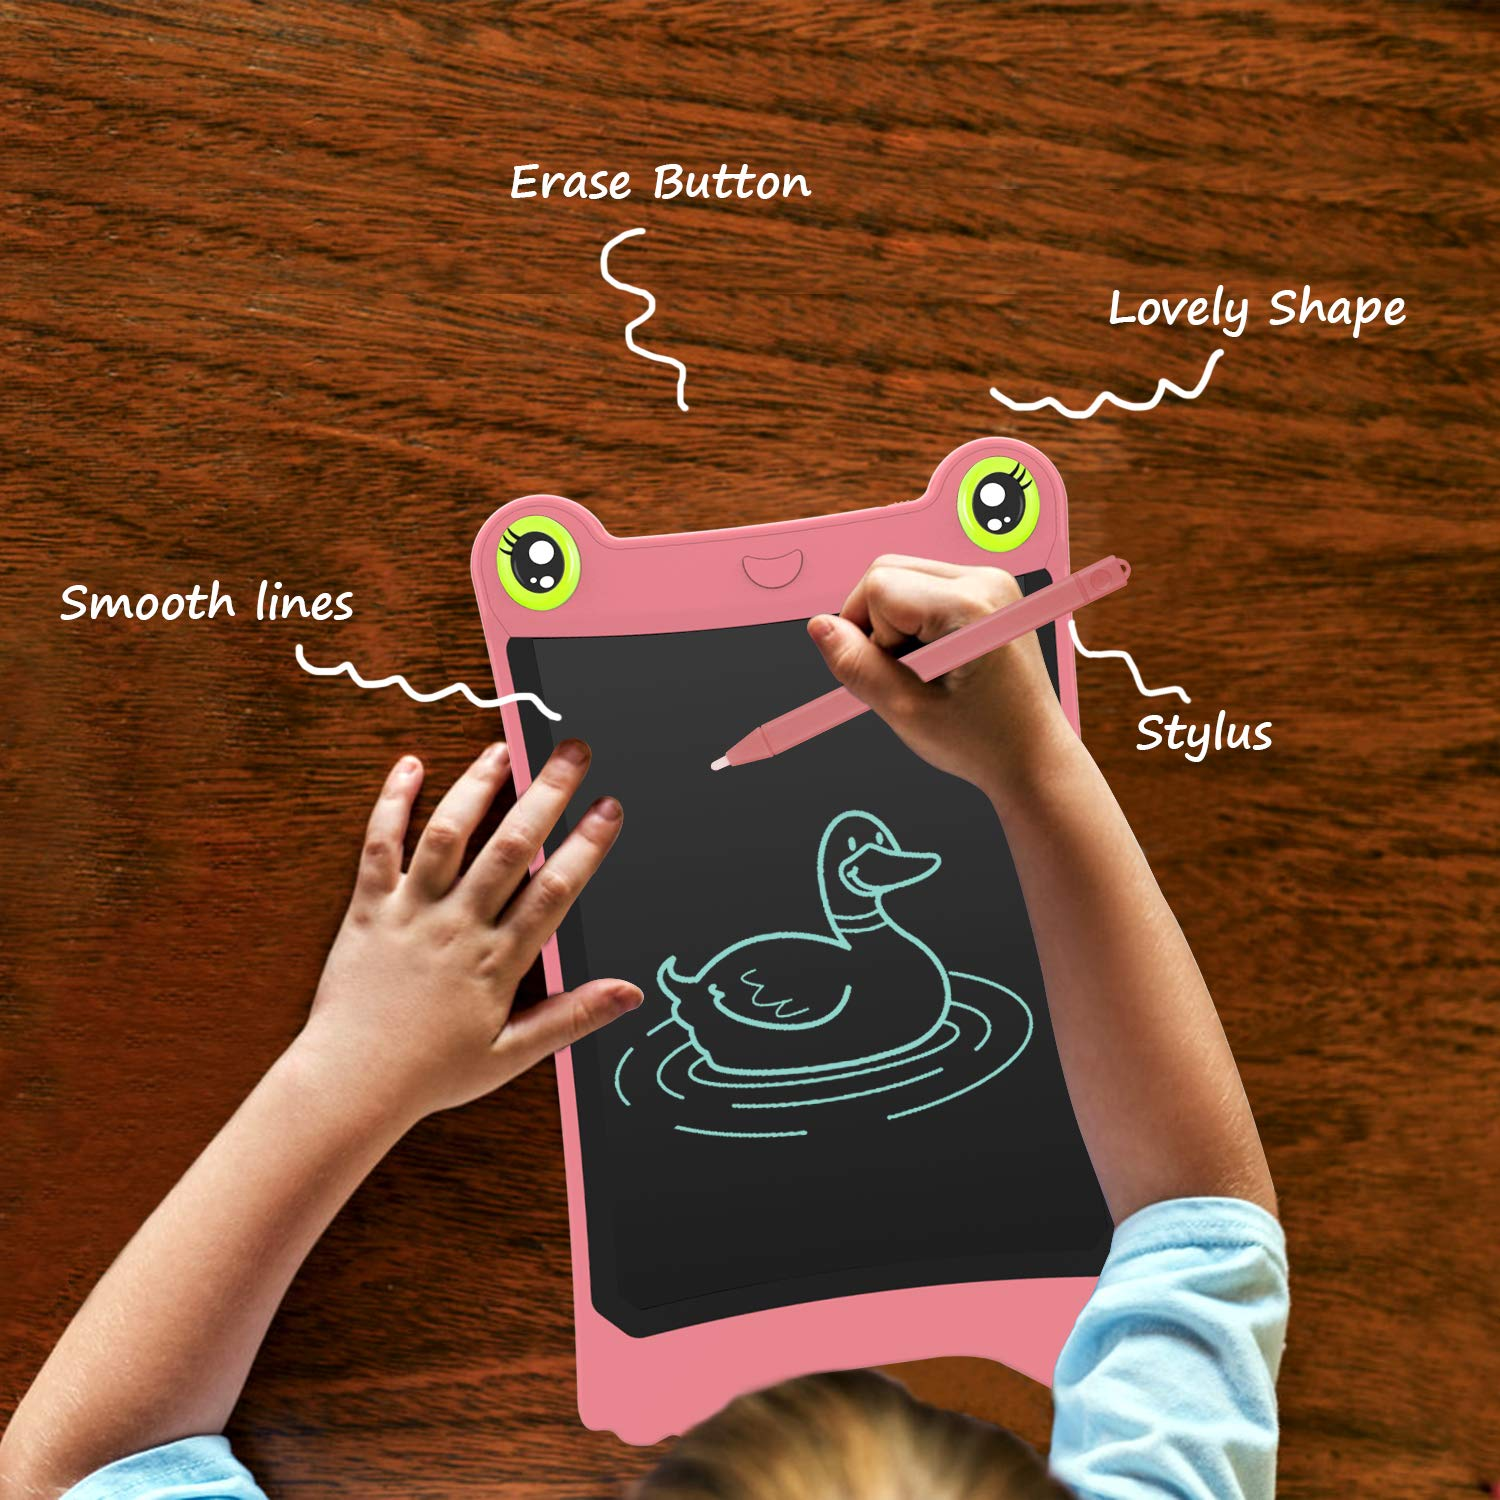 NEWYES 8.5 Inch LCD Writing Tablet Updated Frog Pad Children Electronic Doodle Board Jot Digital E-Writer Kids Scribble Toy with Lock Function Pink by NEWYES (Image #3)